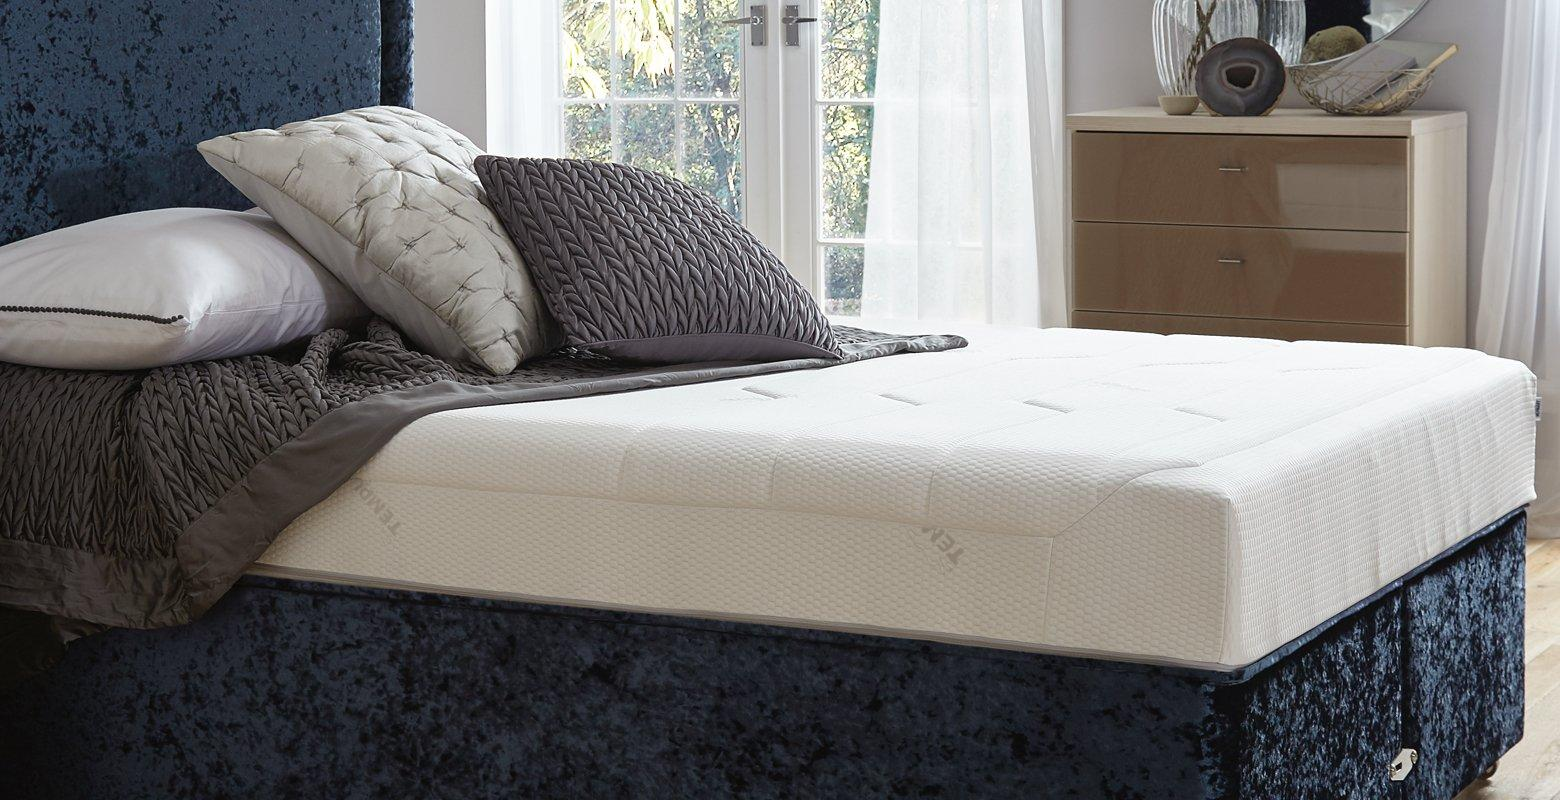 Dreams Mattress Guarantee How To Clean A Memory Foam Mattress Dreams